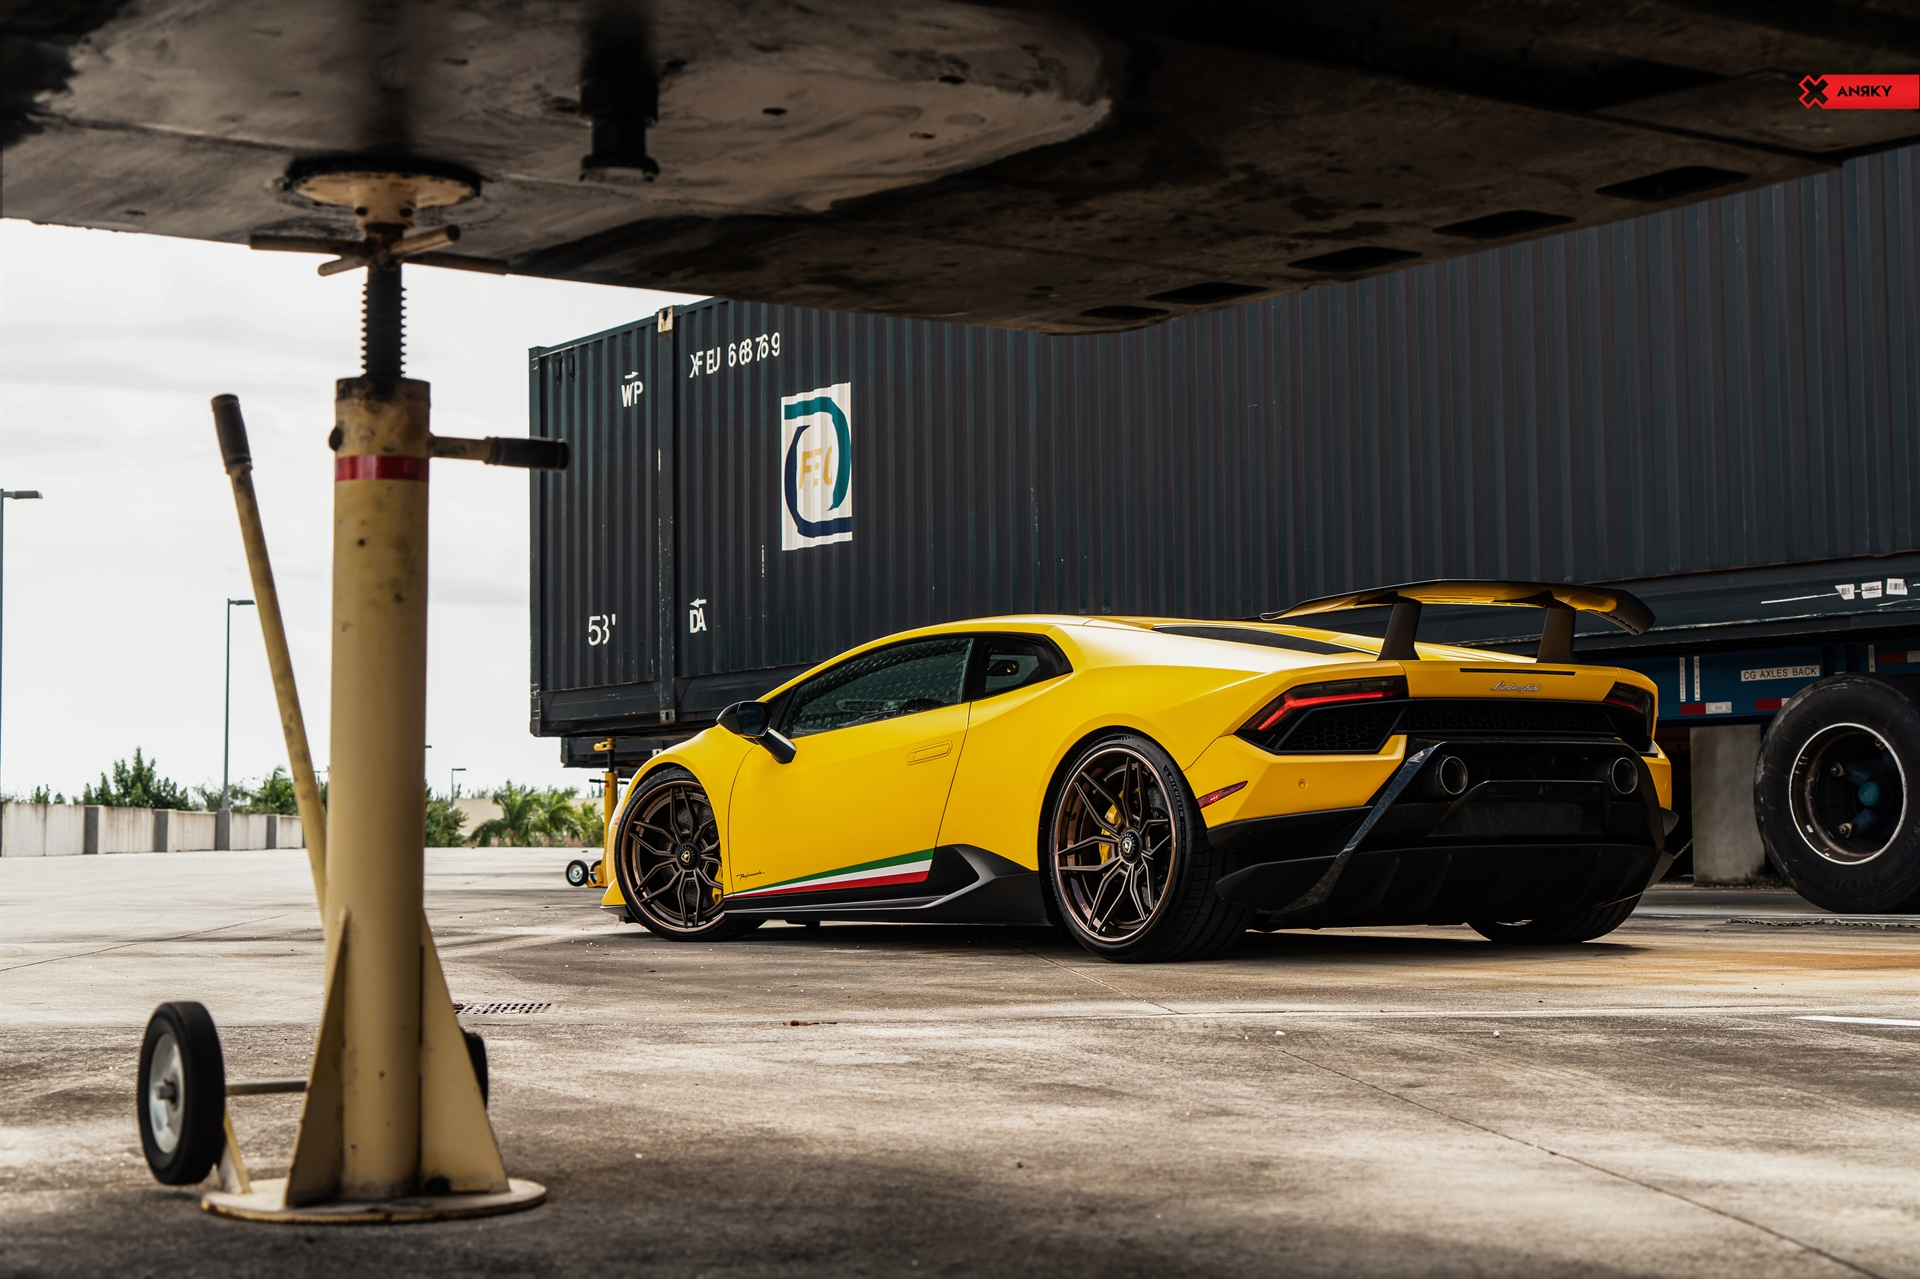 Lamborghini Huracan Performante – AN36 CL